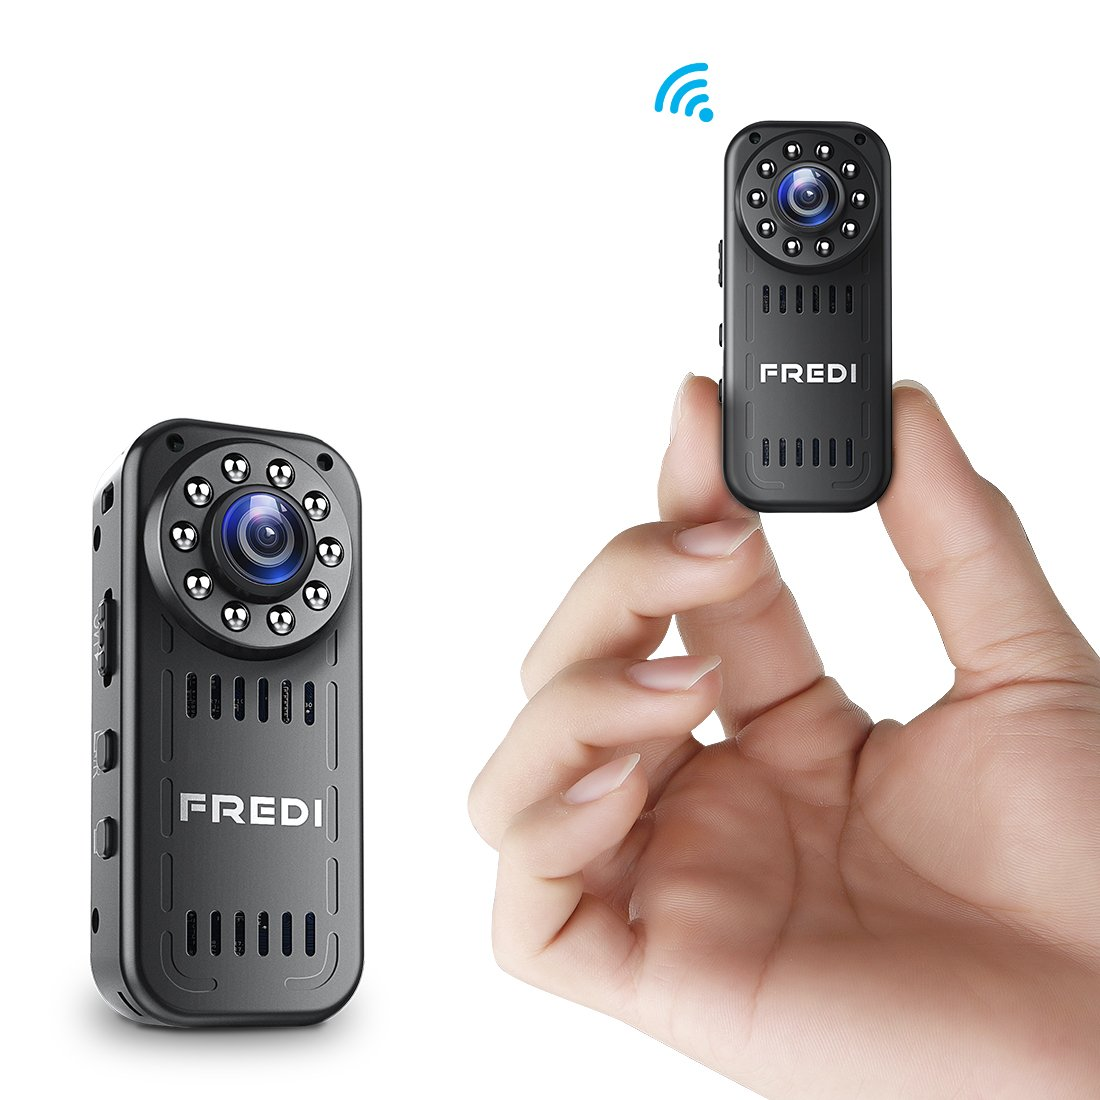 8. FREDI Hidden Camera 1080p HD Mini WiFi Camera Spy Camera Wireless Camera